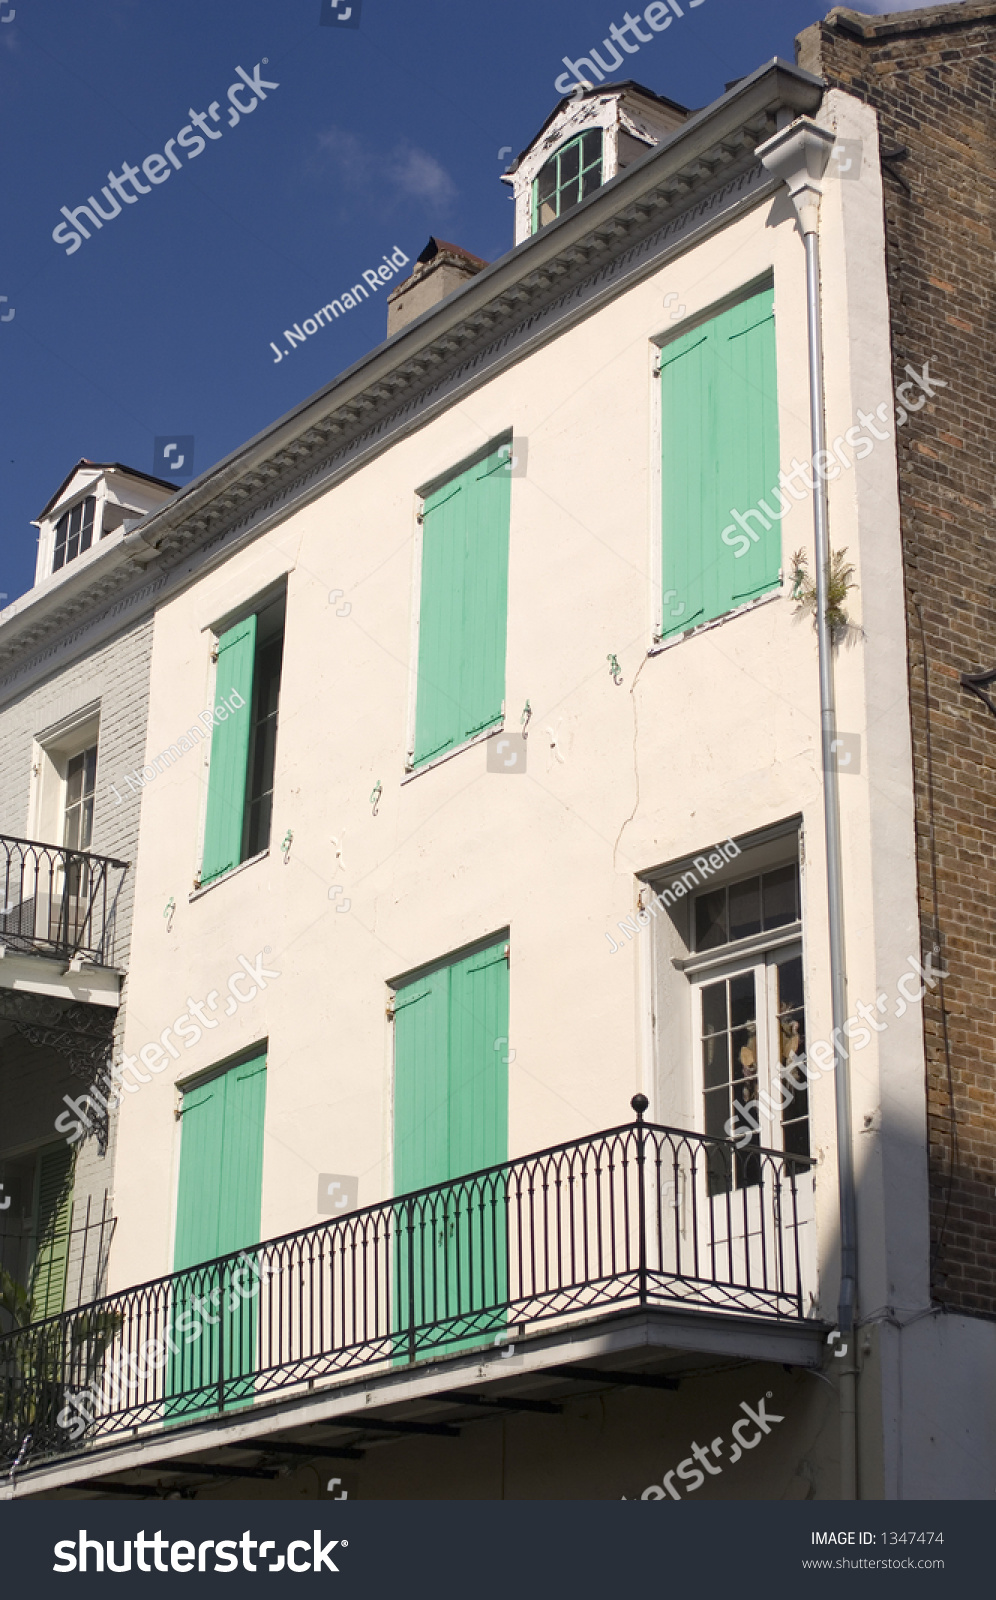 Building with balcony chartres st new orleans la for Building balcony